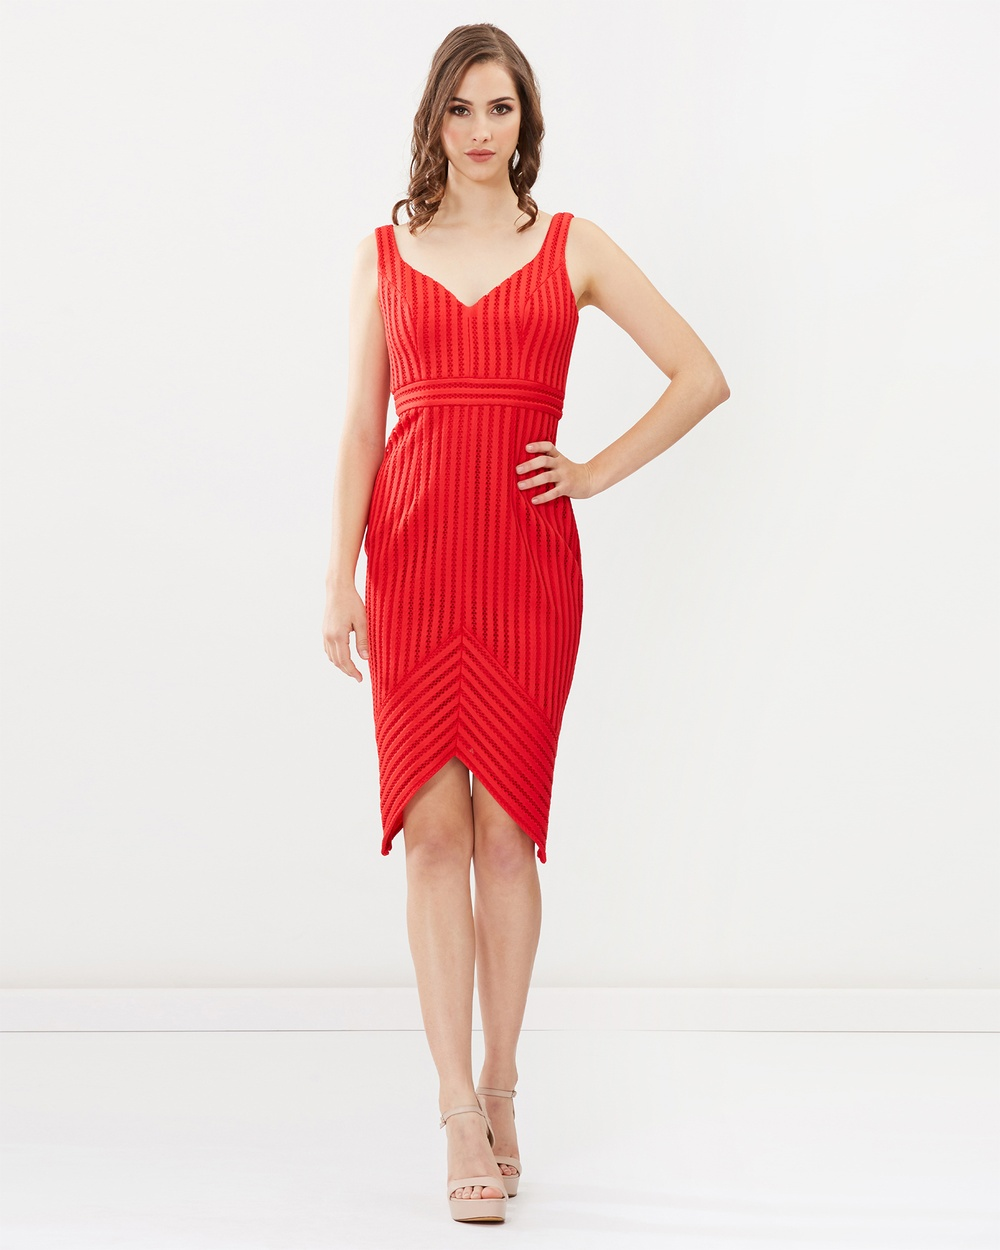 Romance by Honey and Beau Kira Dress Dresses Red Kira Dress